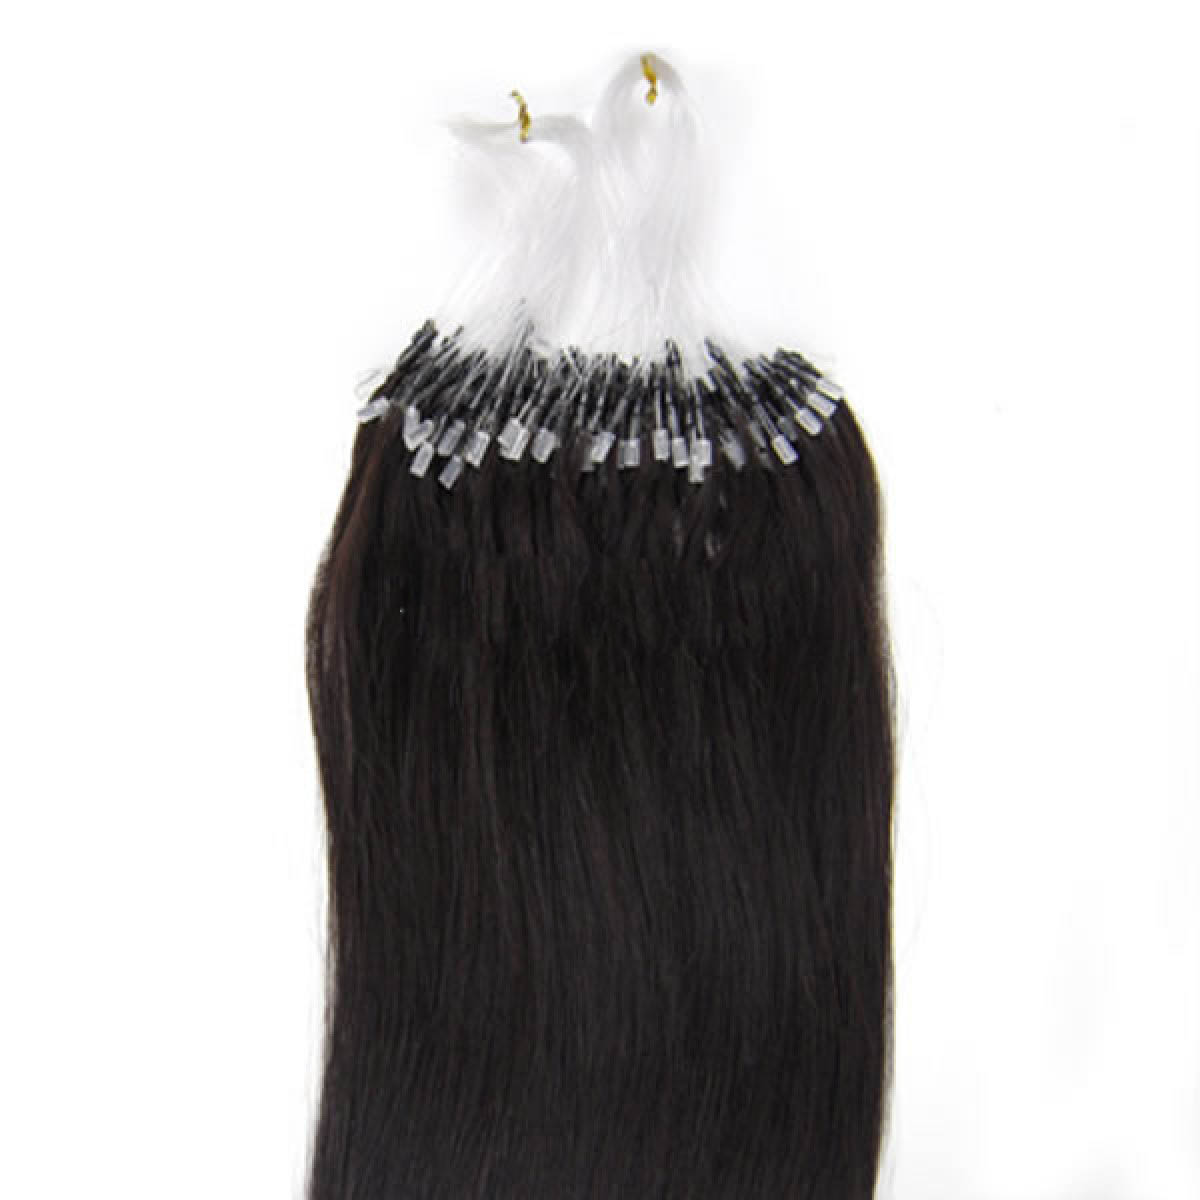 16 inch 1b natural black micro loop human hair extensions 100s 100g 16 inch 1b natural black micro loop human hair extensions 100s 100g no 2 pmusecretfo Choice Image